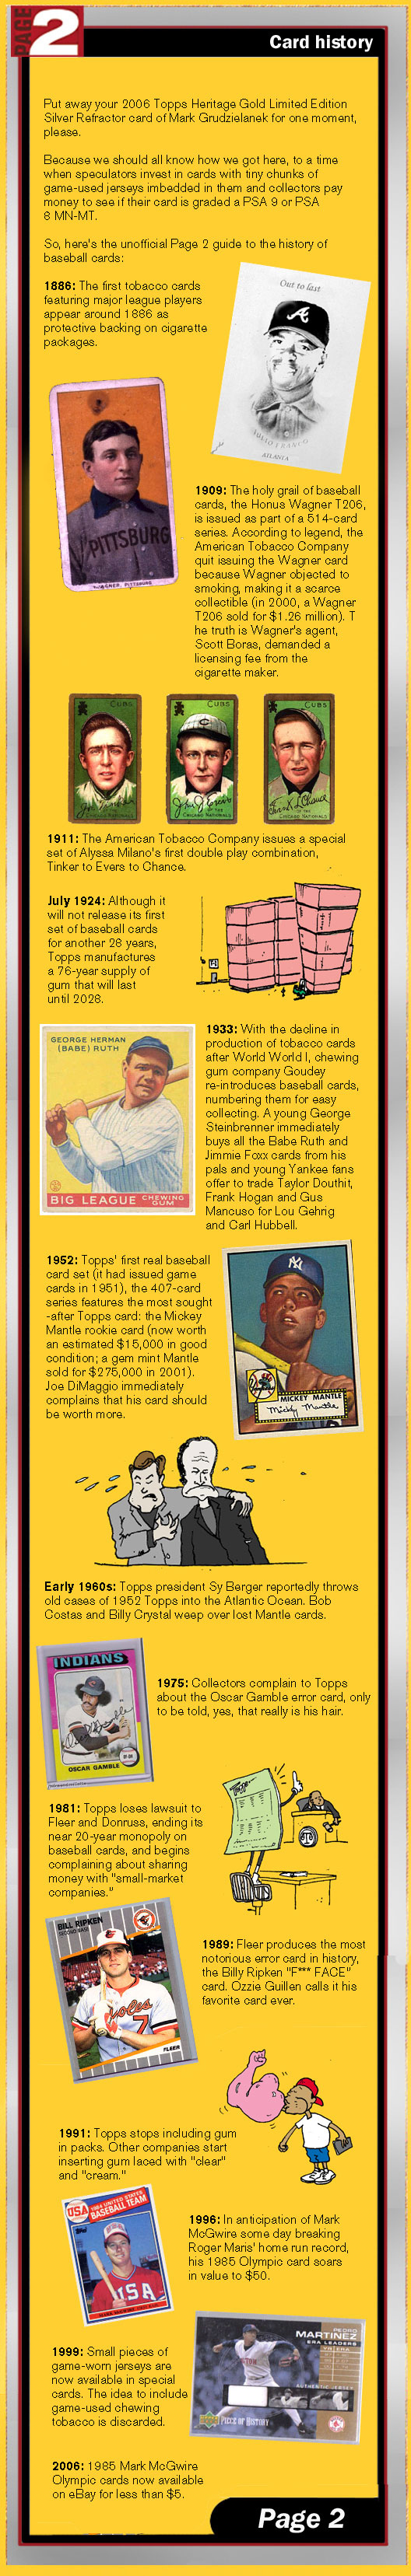 Espncom Page 2 A Short History Of Baseball Cards